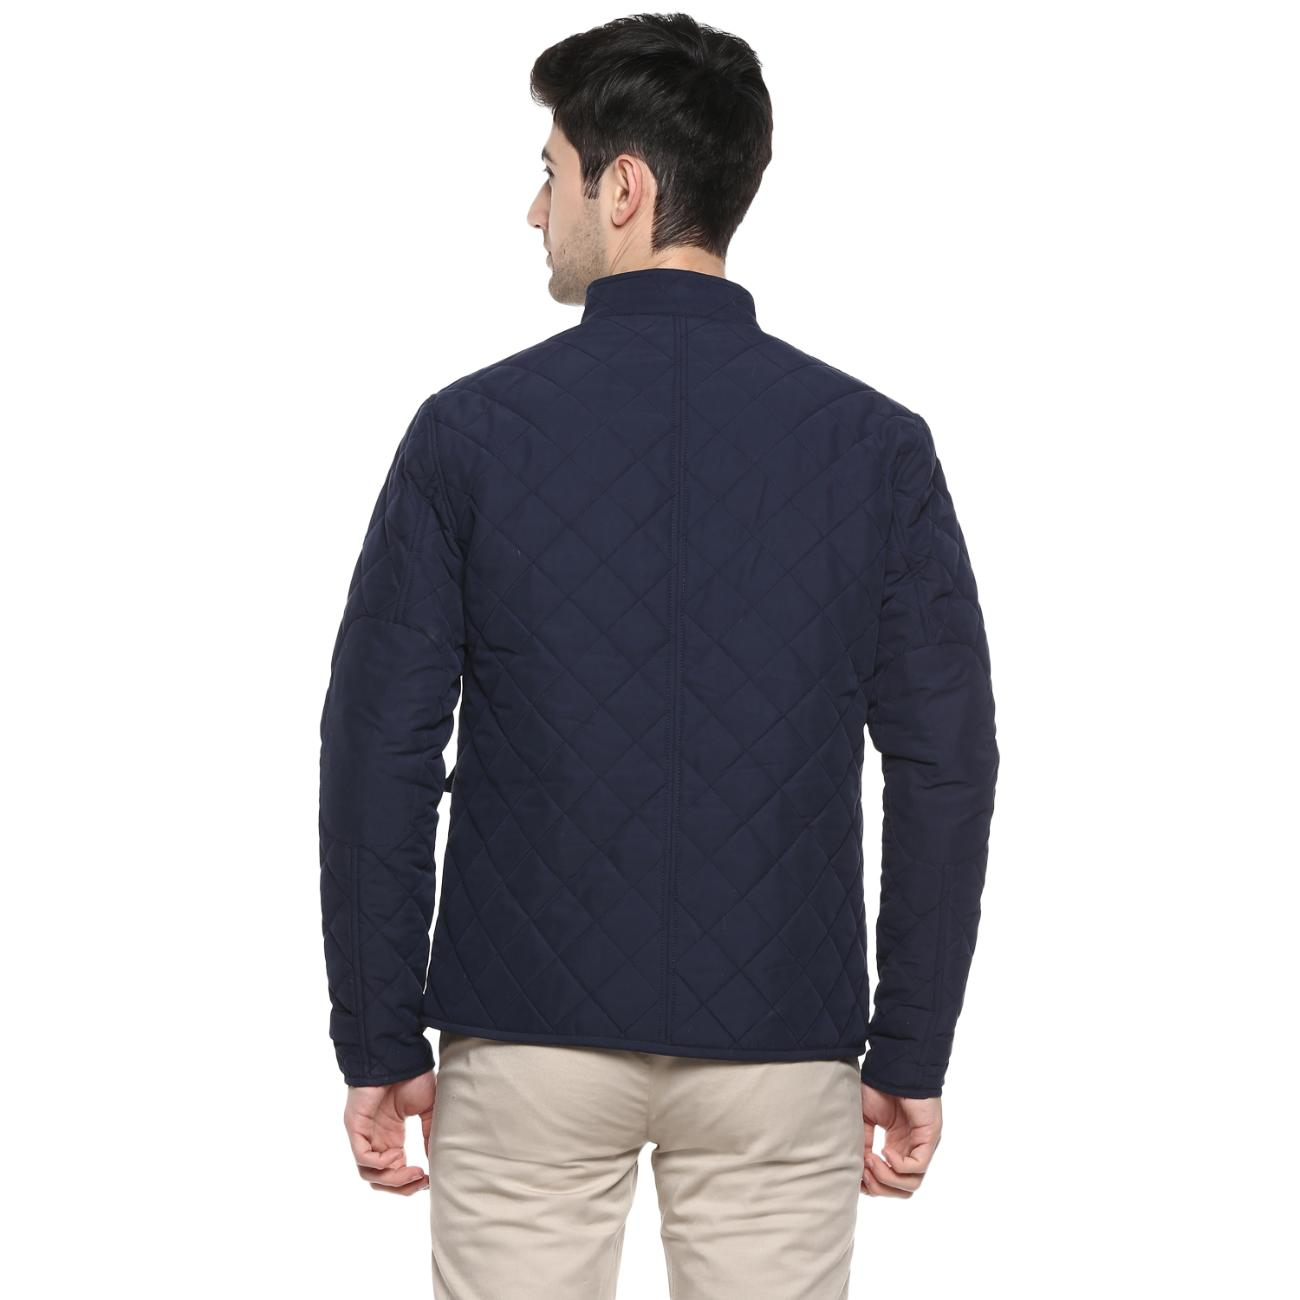 Online Red Chief's D. Navy Jacket